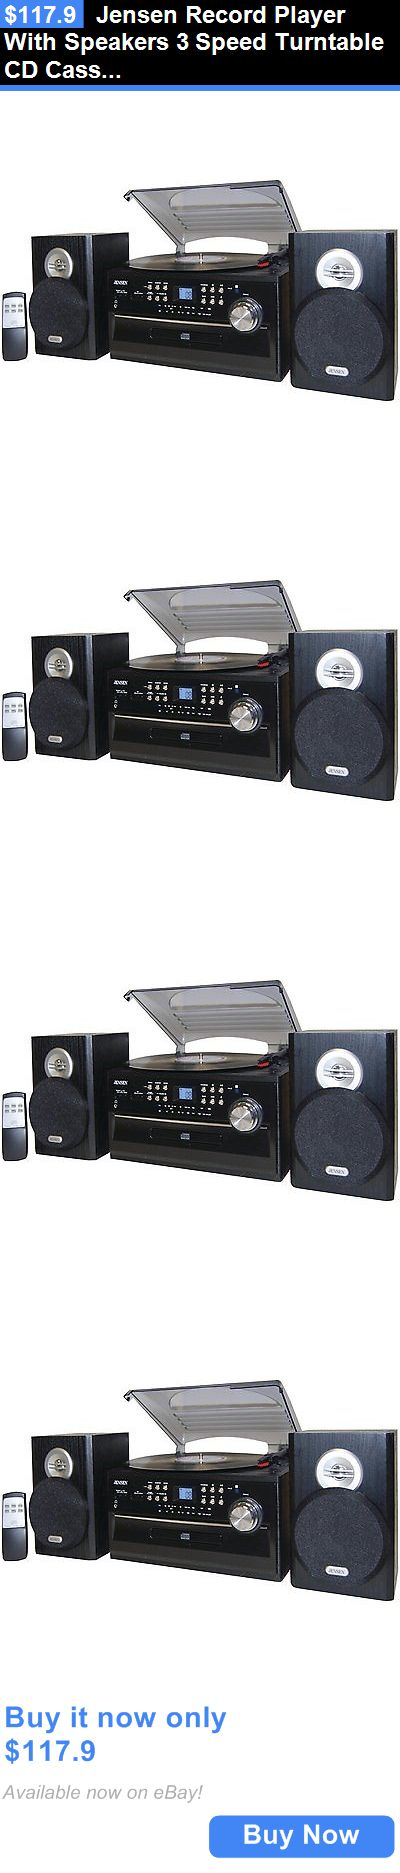 Home Audio: Jensen Record Player With Speakers 3 Speed Turntable Cd Cassette Stereo System BUY IT NOW ONLY: $117.9